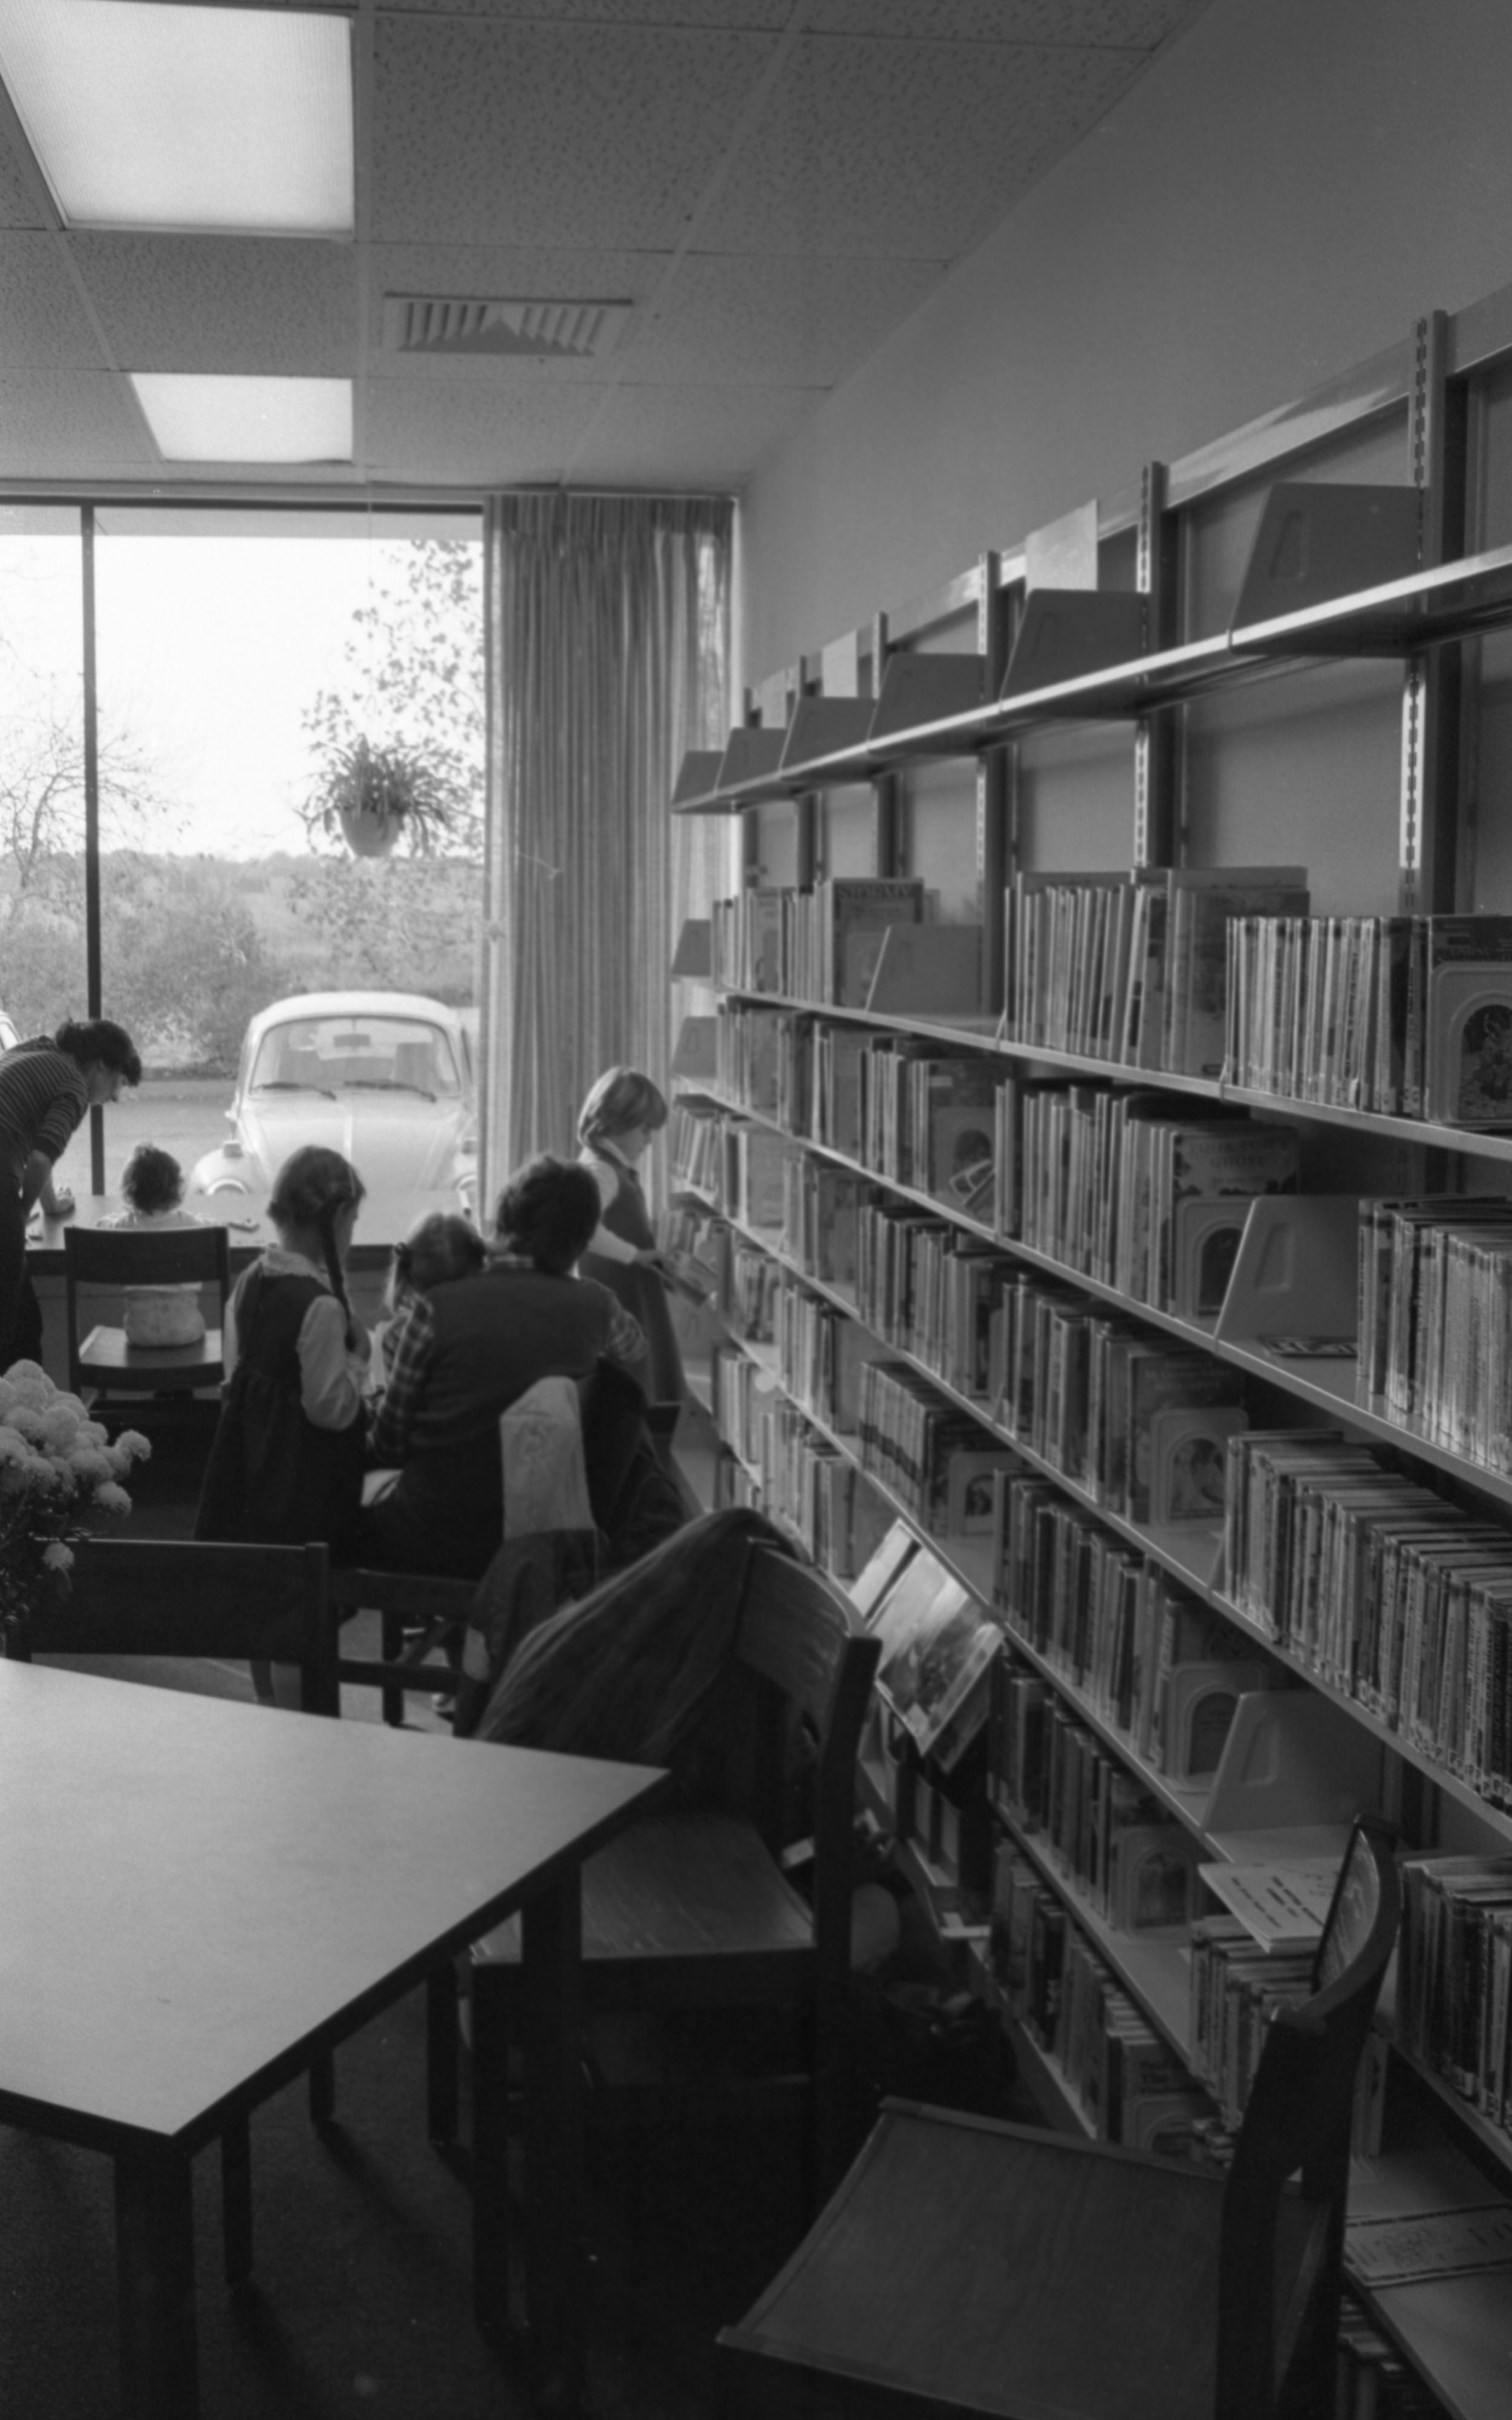 Children Browse Books At The Grand Opening Of The New Northeast Branch Of The Ann Arbor Public Library, October 1981 image